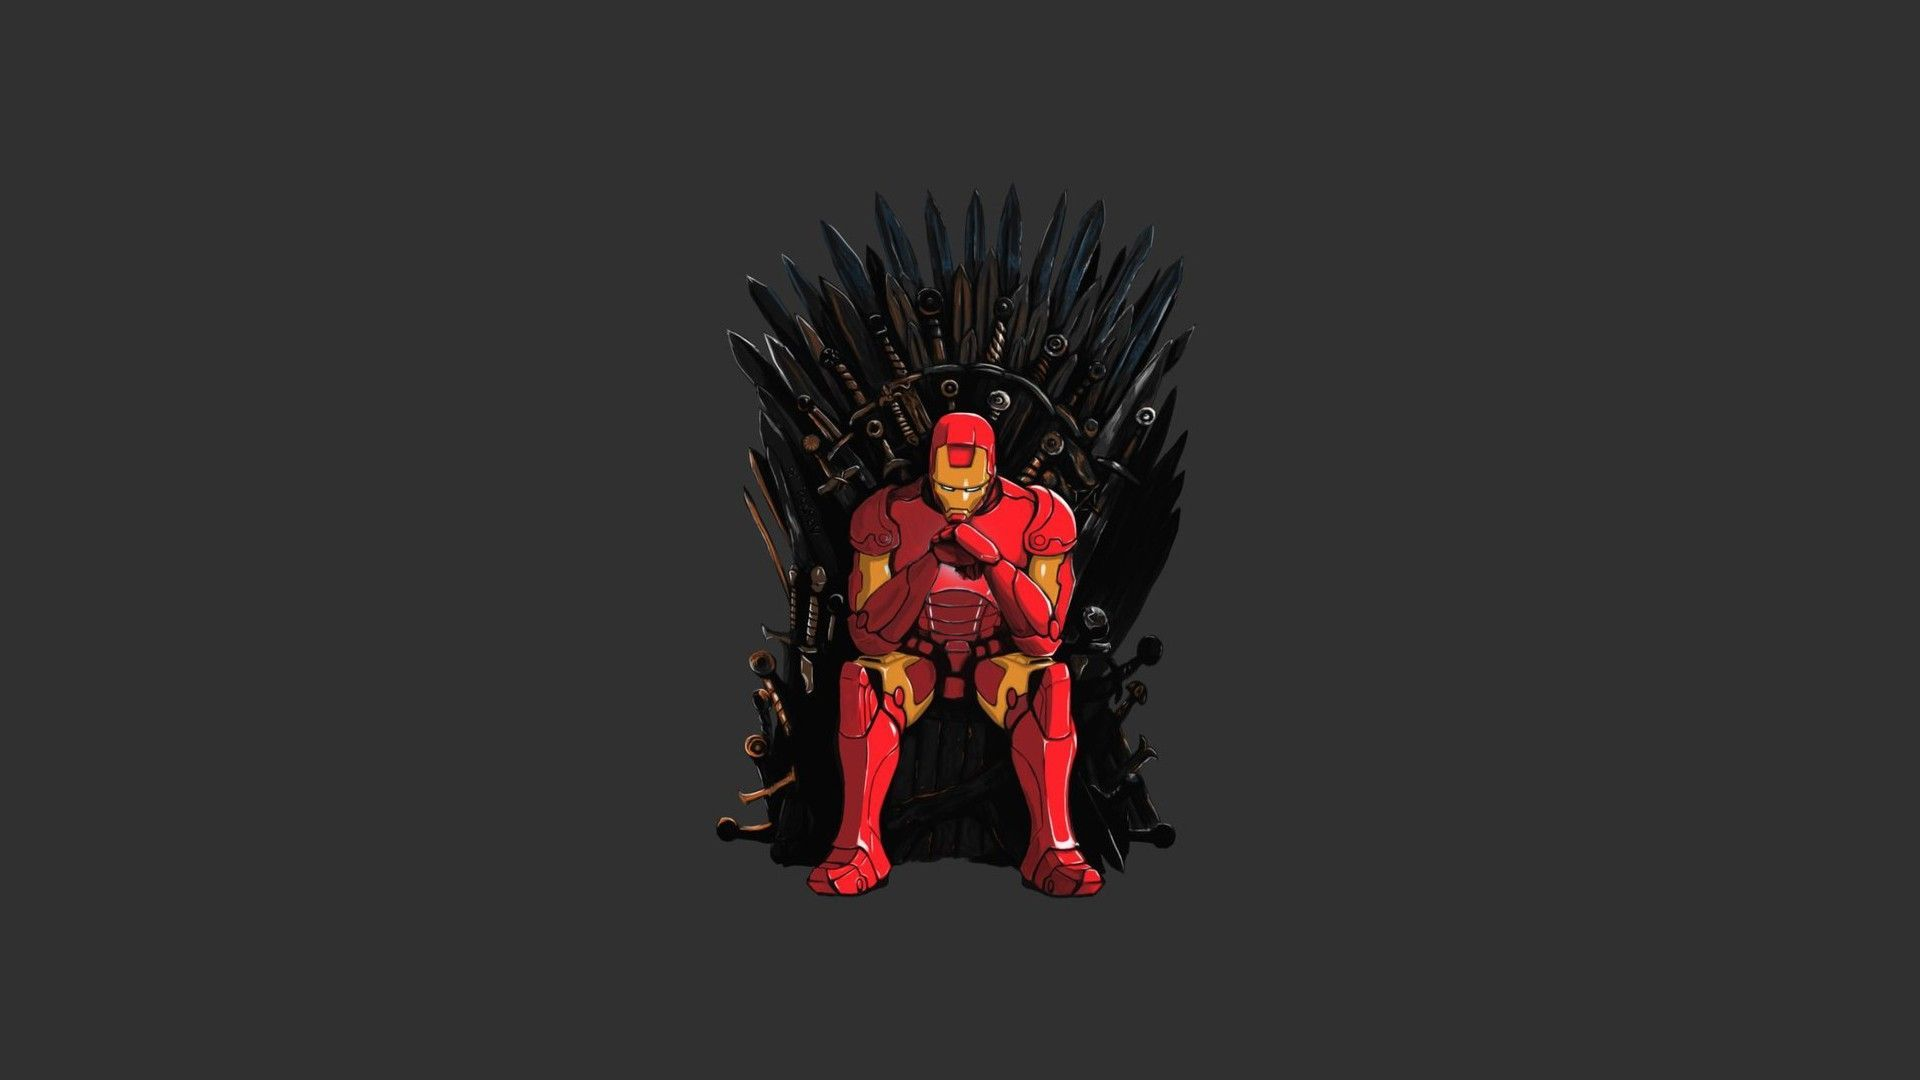 Game of Thrones Iron Man crossover